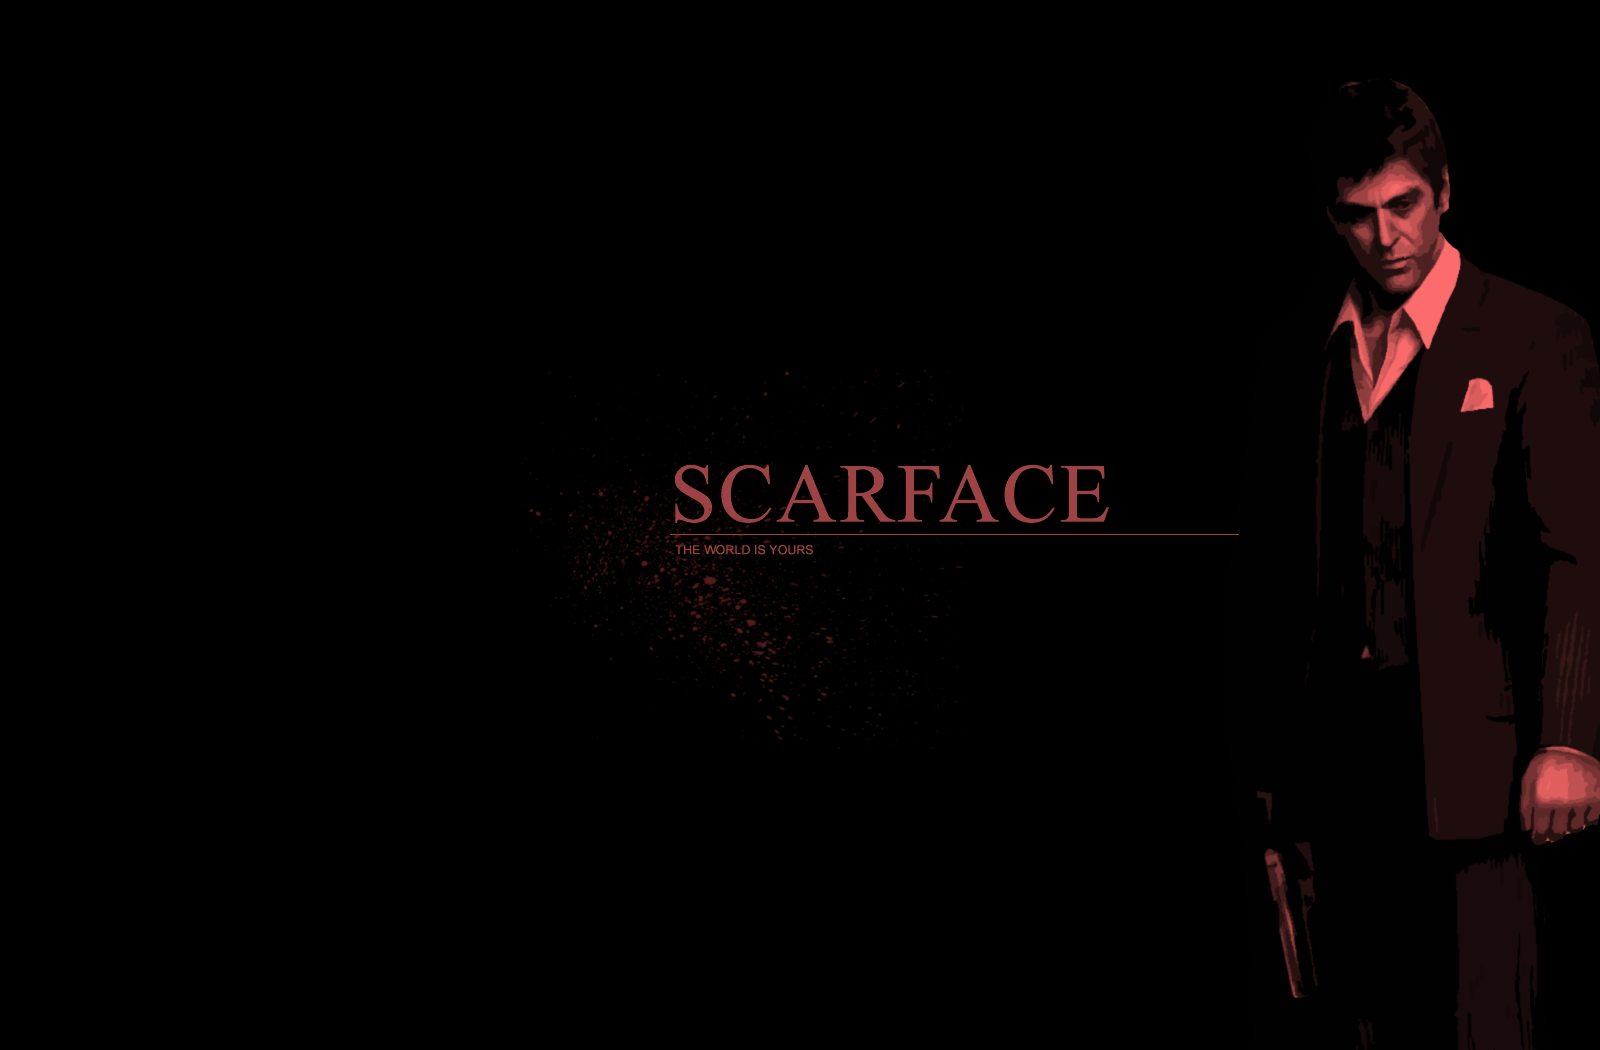 Scarface wallpapers hd wallpaper cave - Scarface wallpaper iphone ...